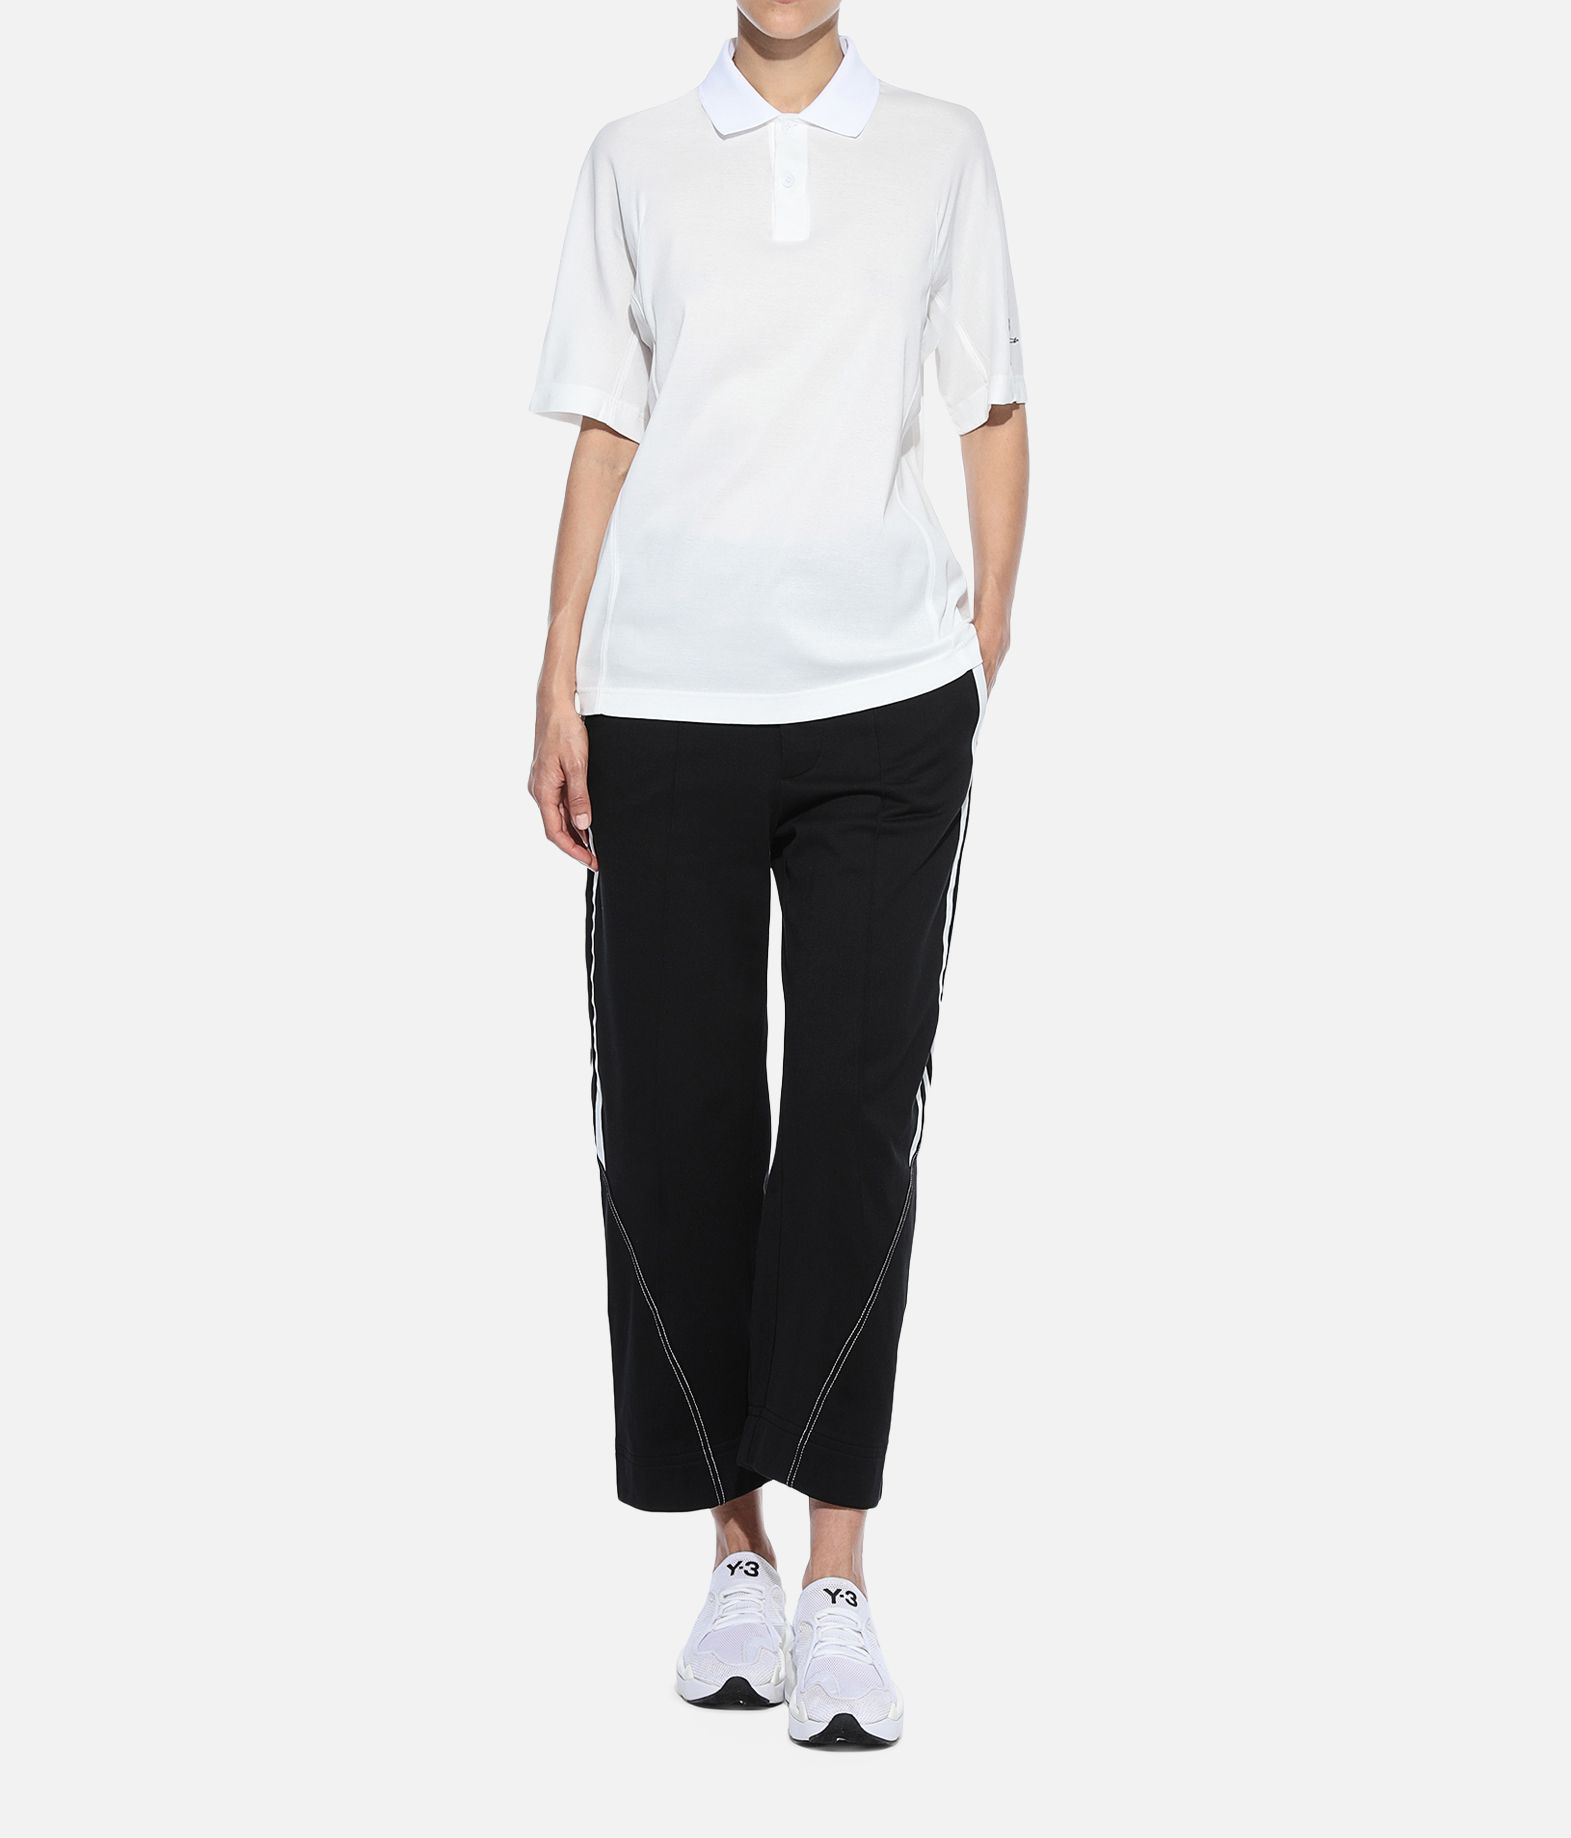 Y-3 Y-3 Classic Polo Shirt Polo Woman a